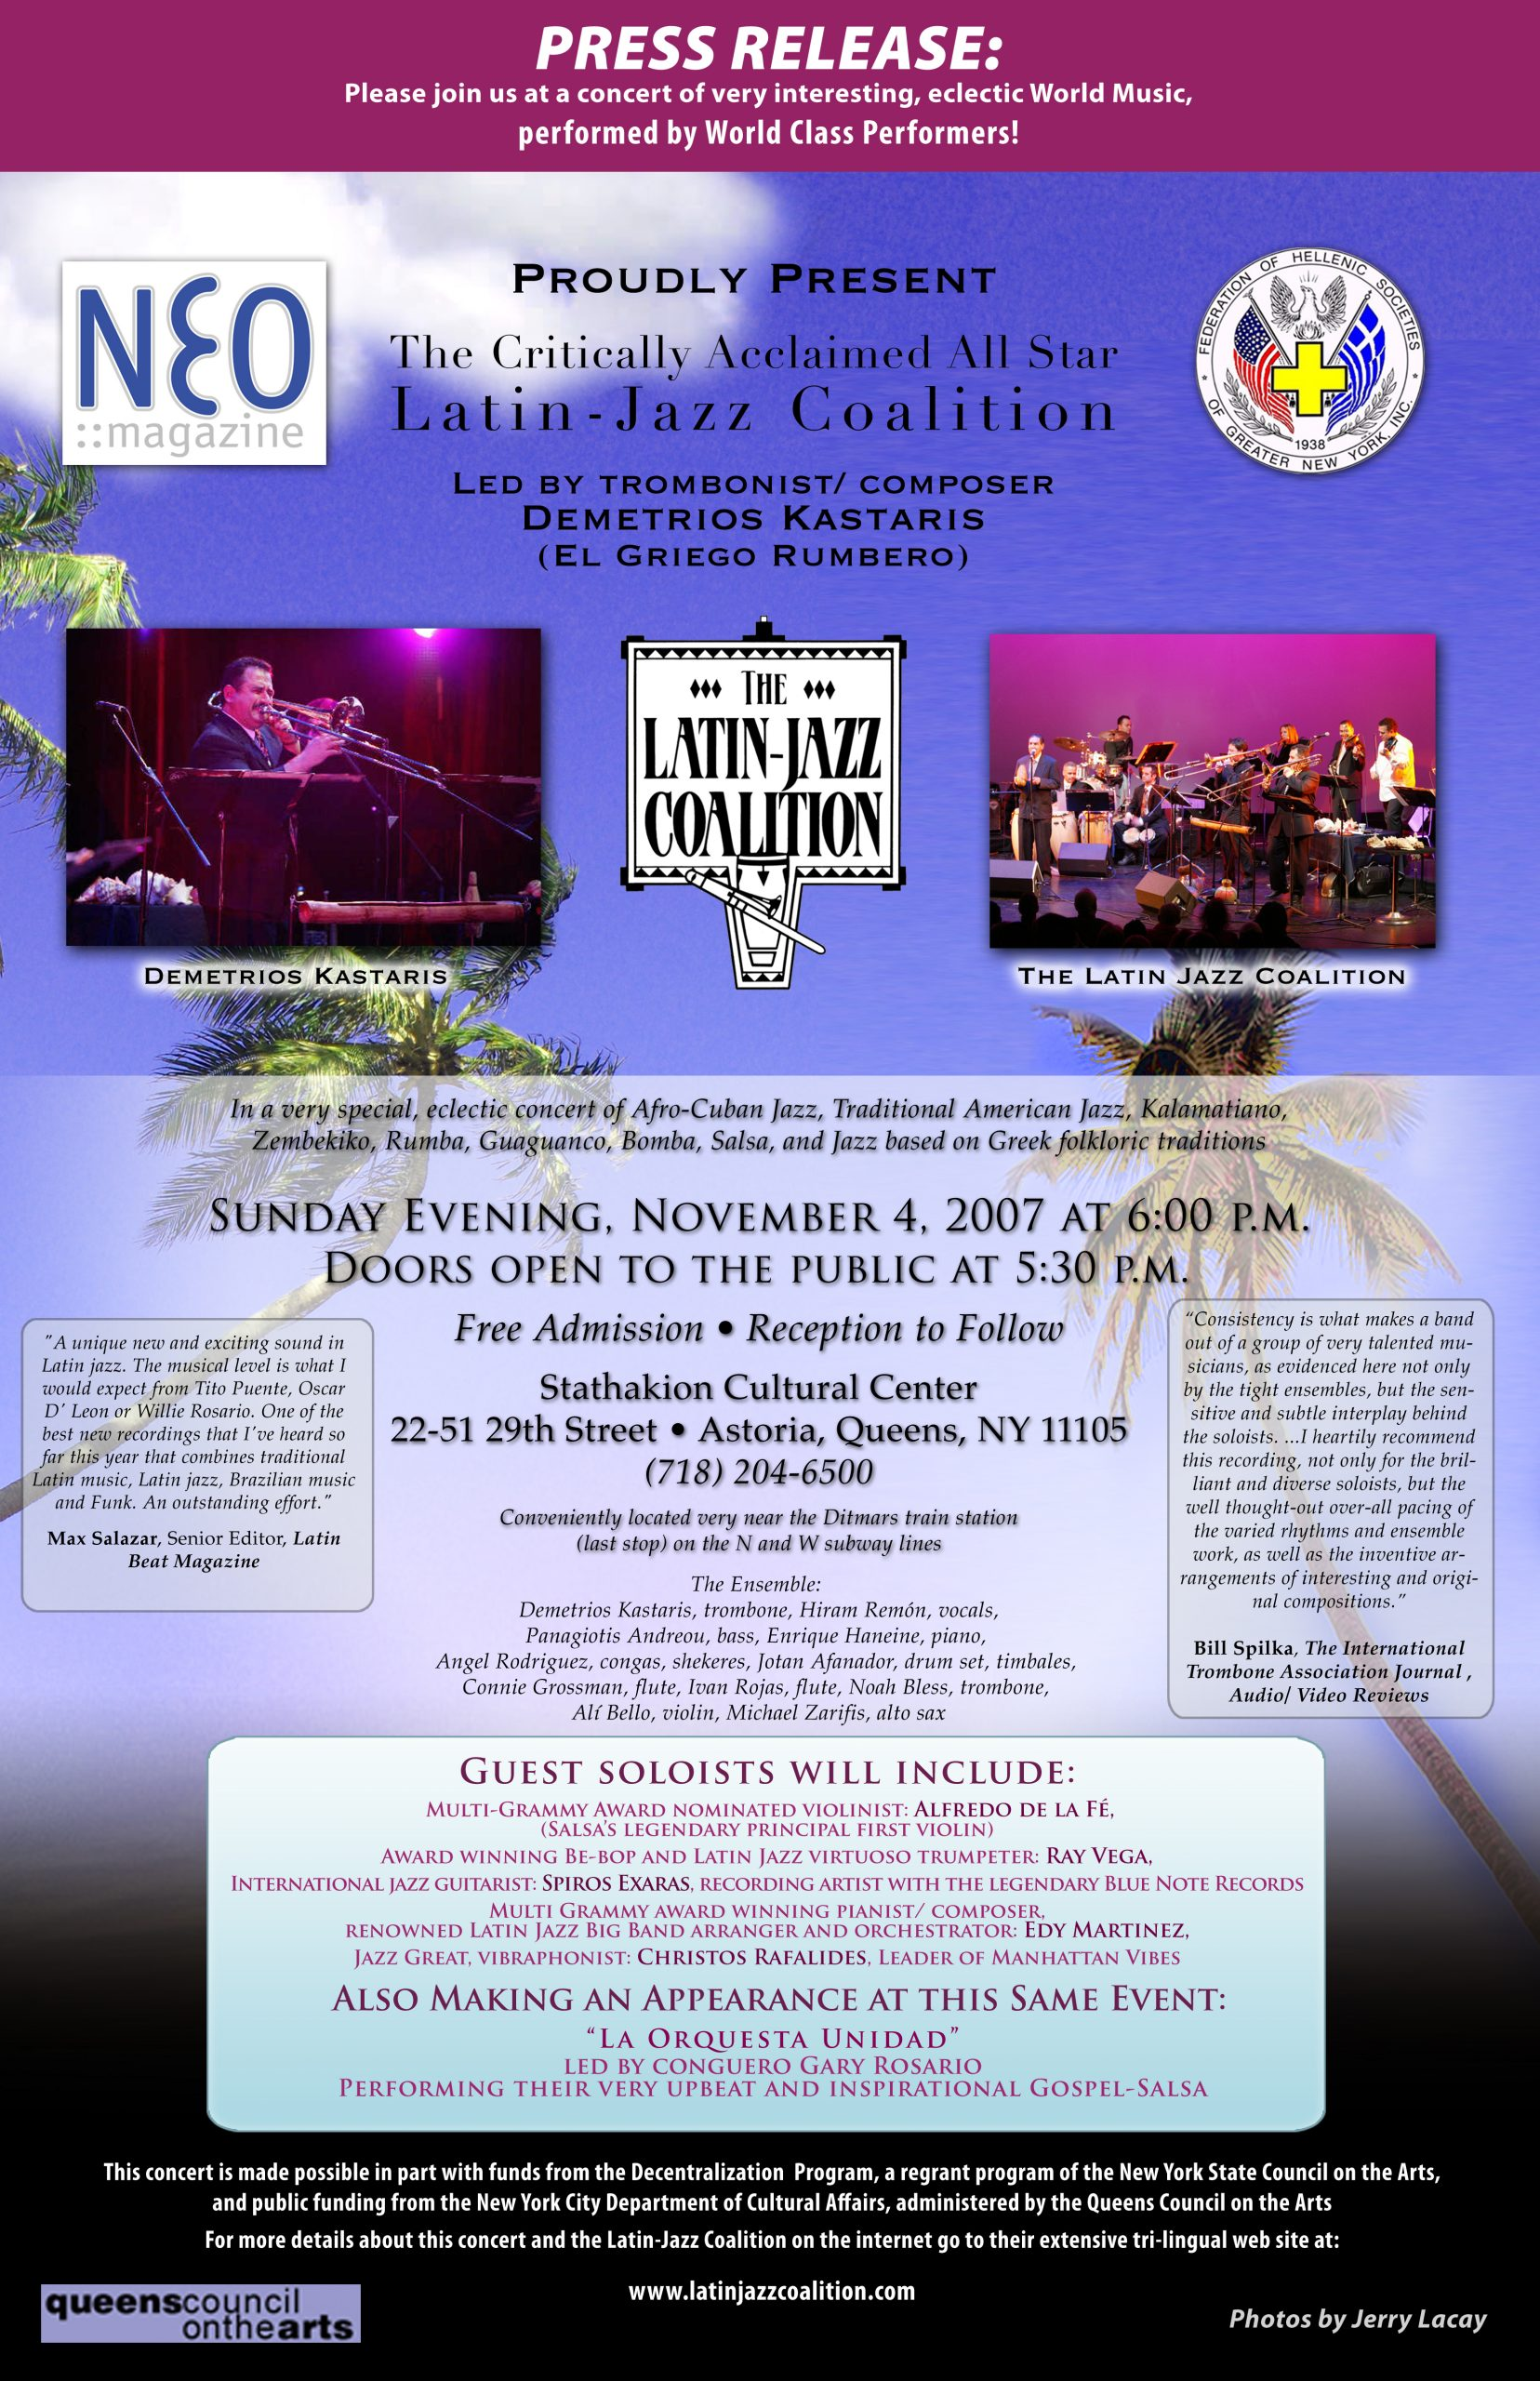 NEO Magazine and The Federation of Hellenic Societies of Greater New York proudly present The Latin-Jazz Coalition Sunday Evening, November 4, 2007 at the Stathakion Cultural Center